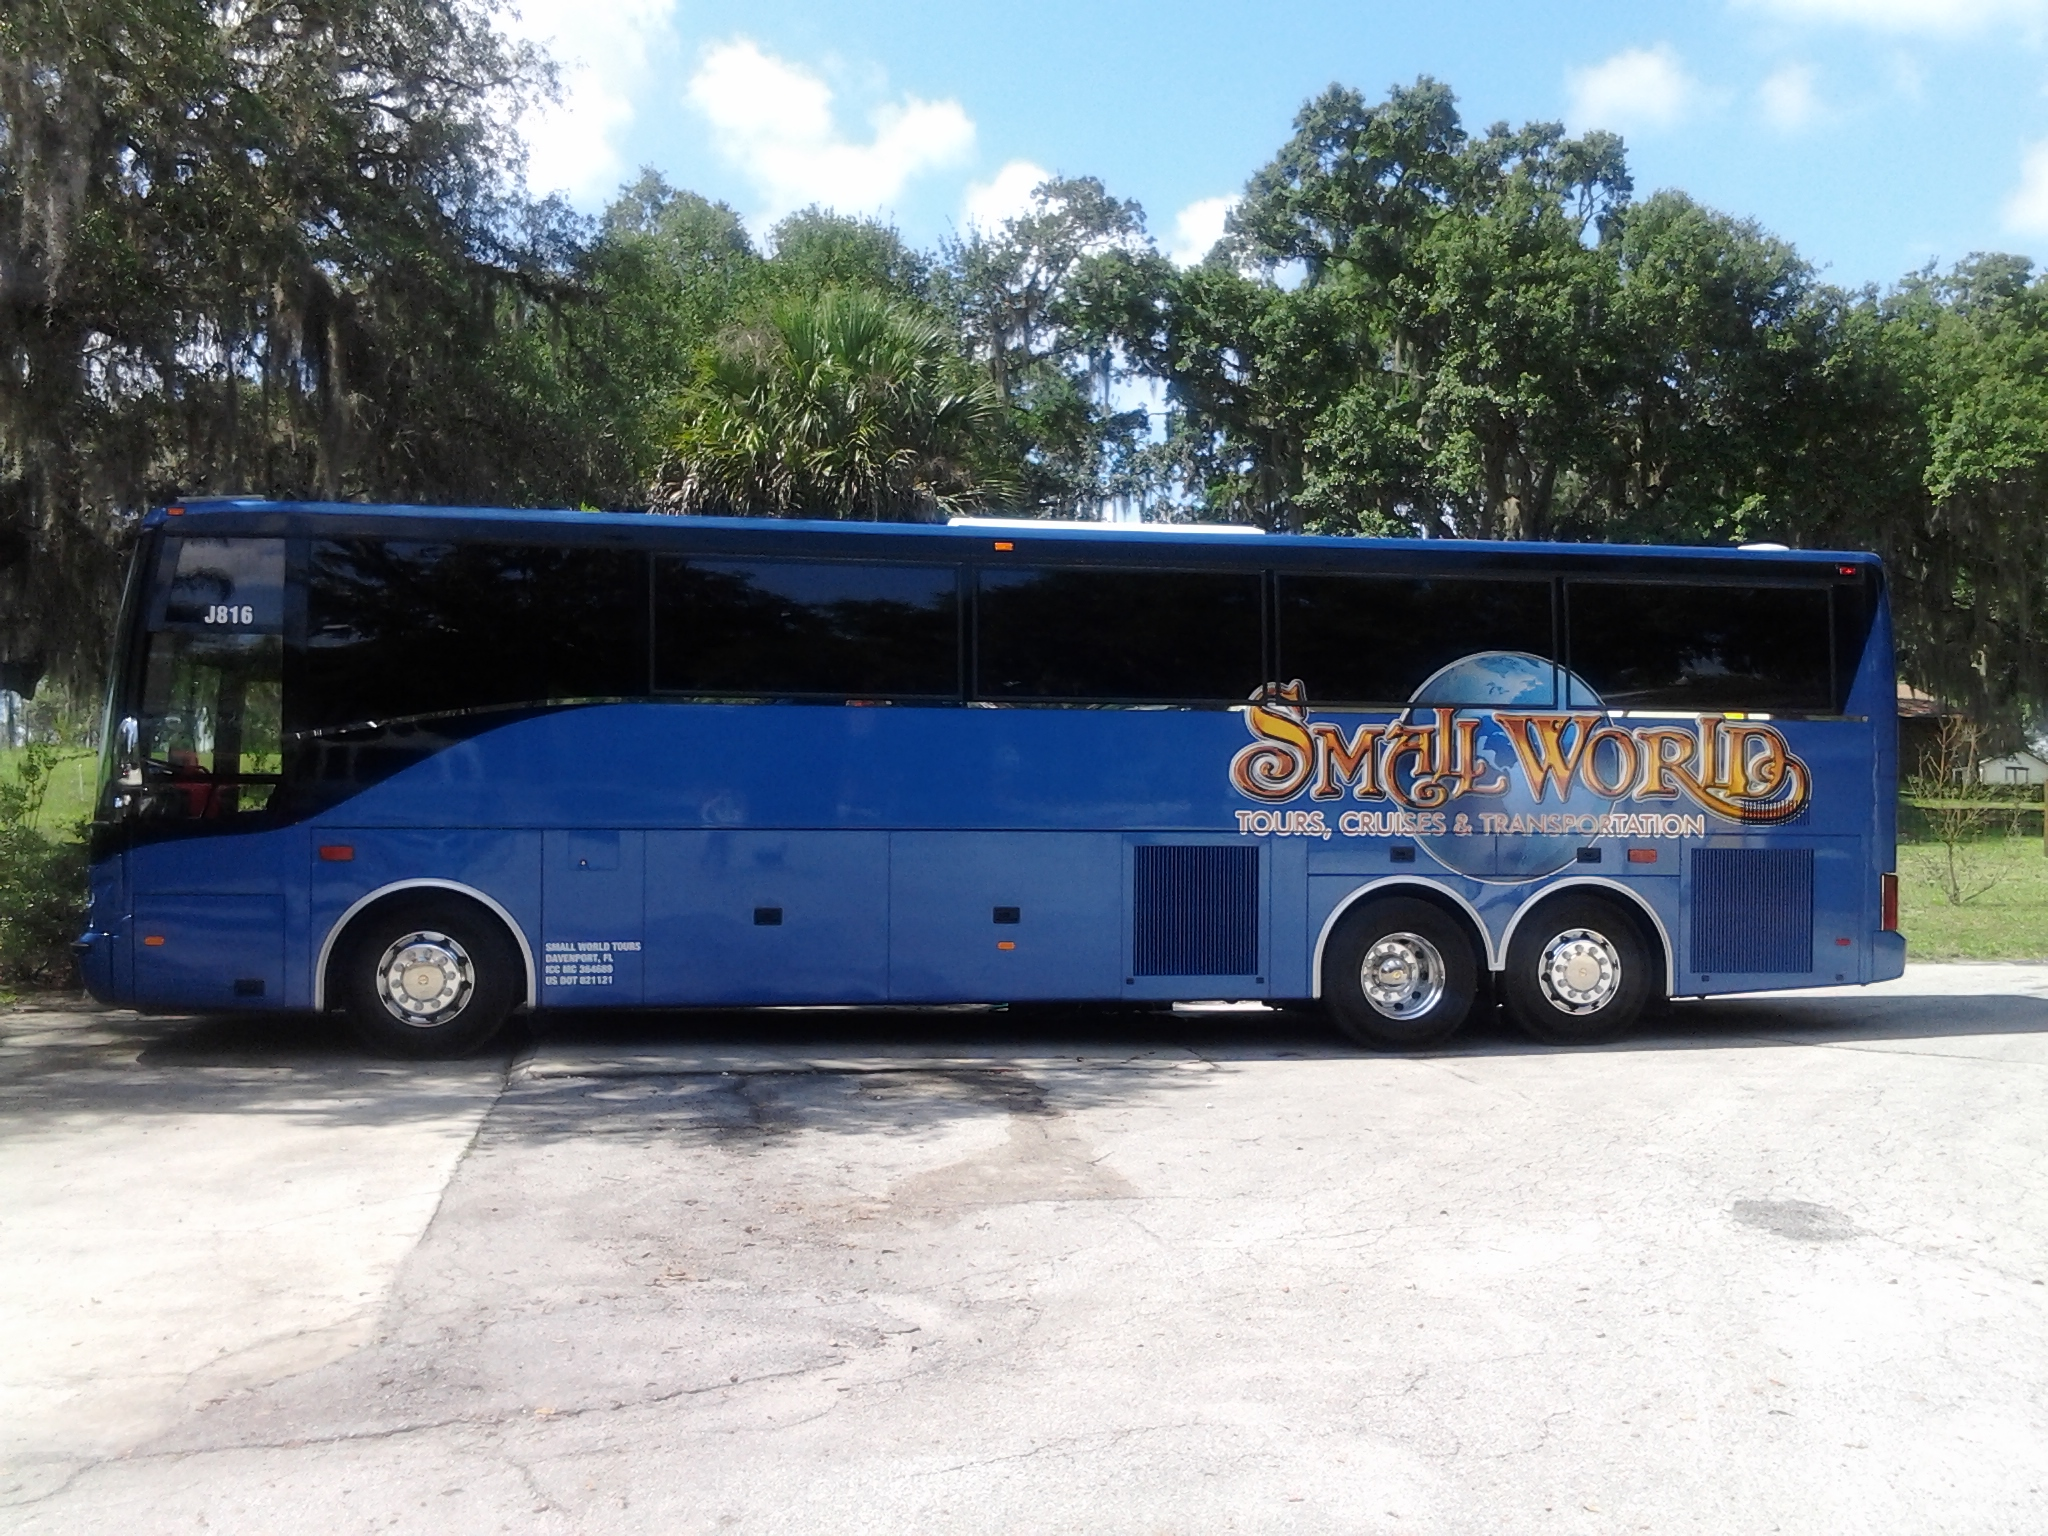 Motorcoach services small world tours and cruises inc for Motor coaches with 2 bedrooms